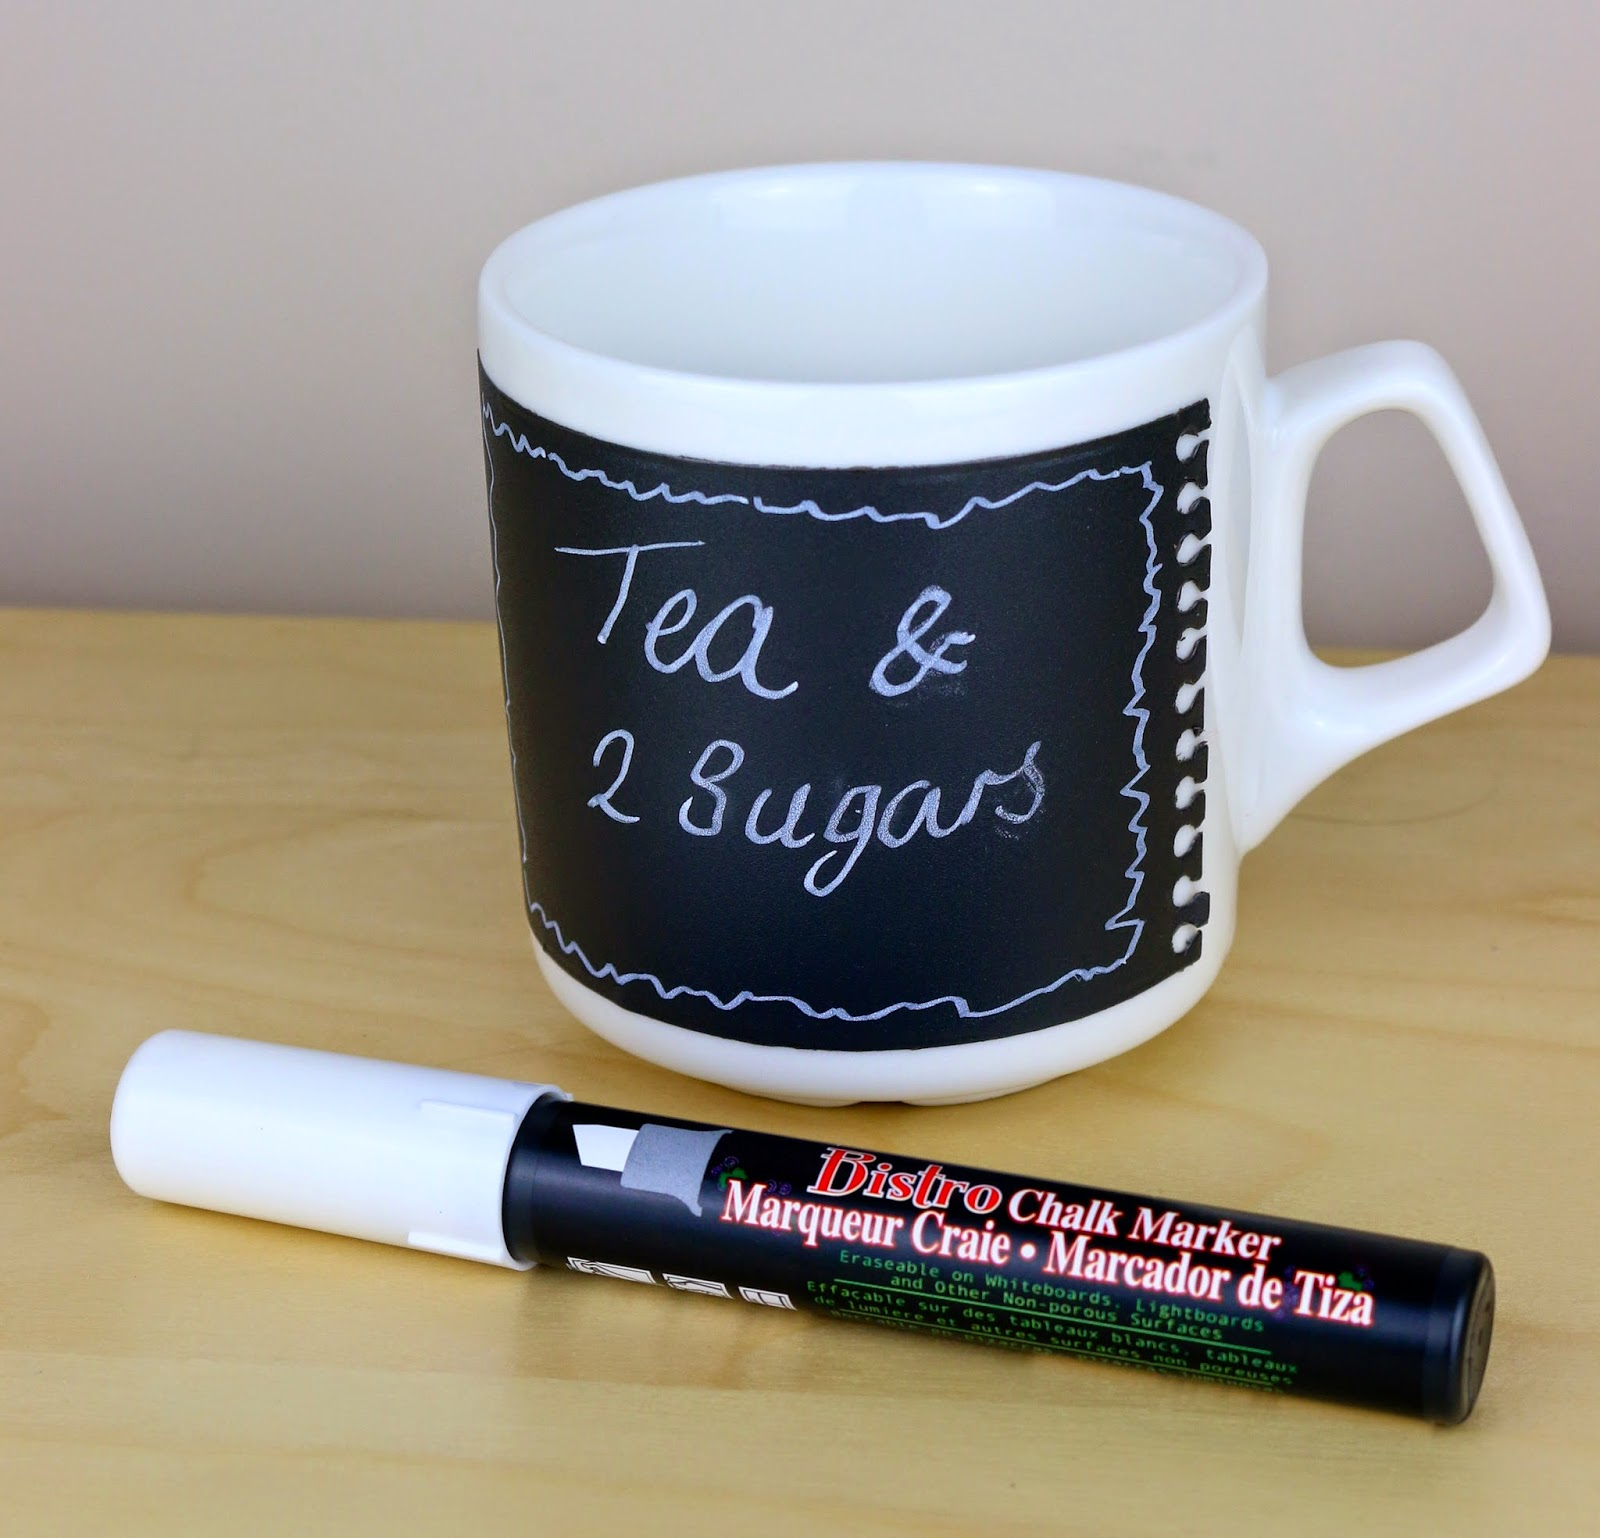 SRM Stickers Blog - Chalkboard Message Mug by Cathy A - #chalkboard #mug #gift #vinyl #whitechalkboardmarker #DIY